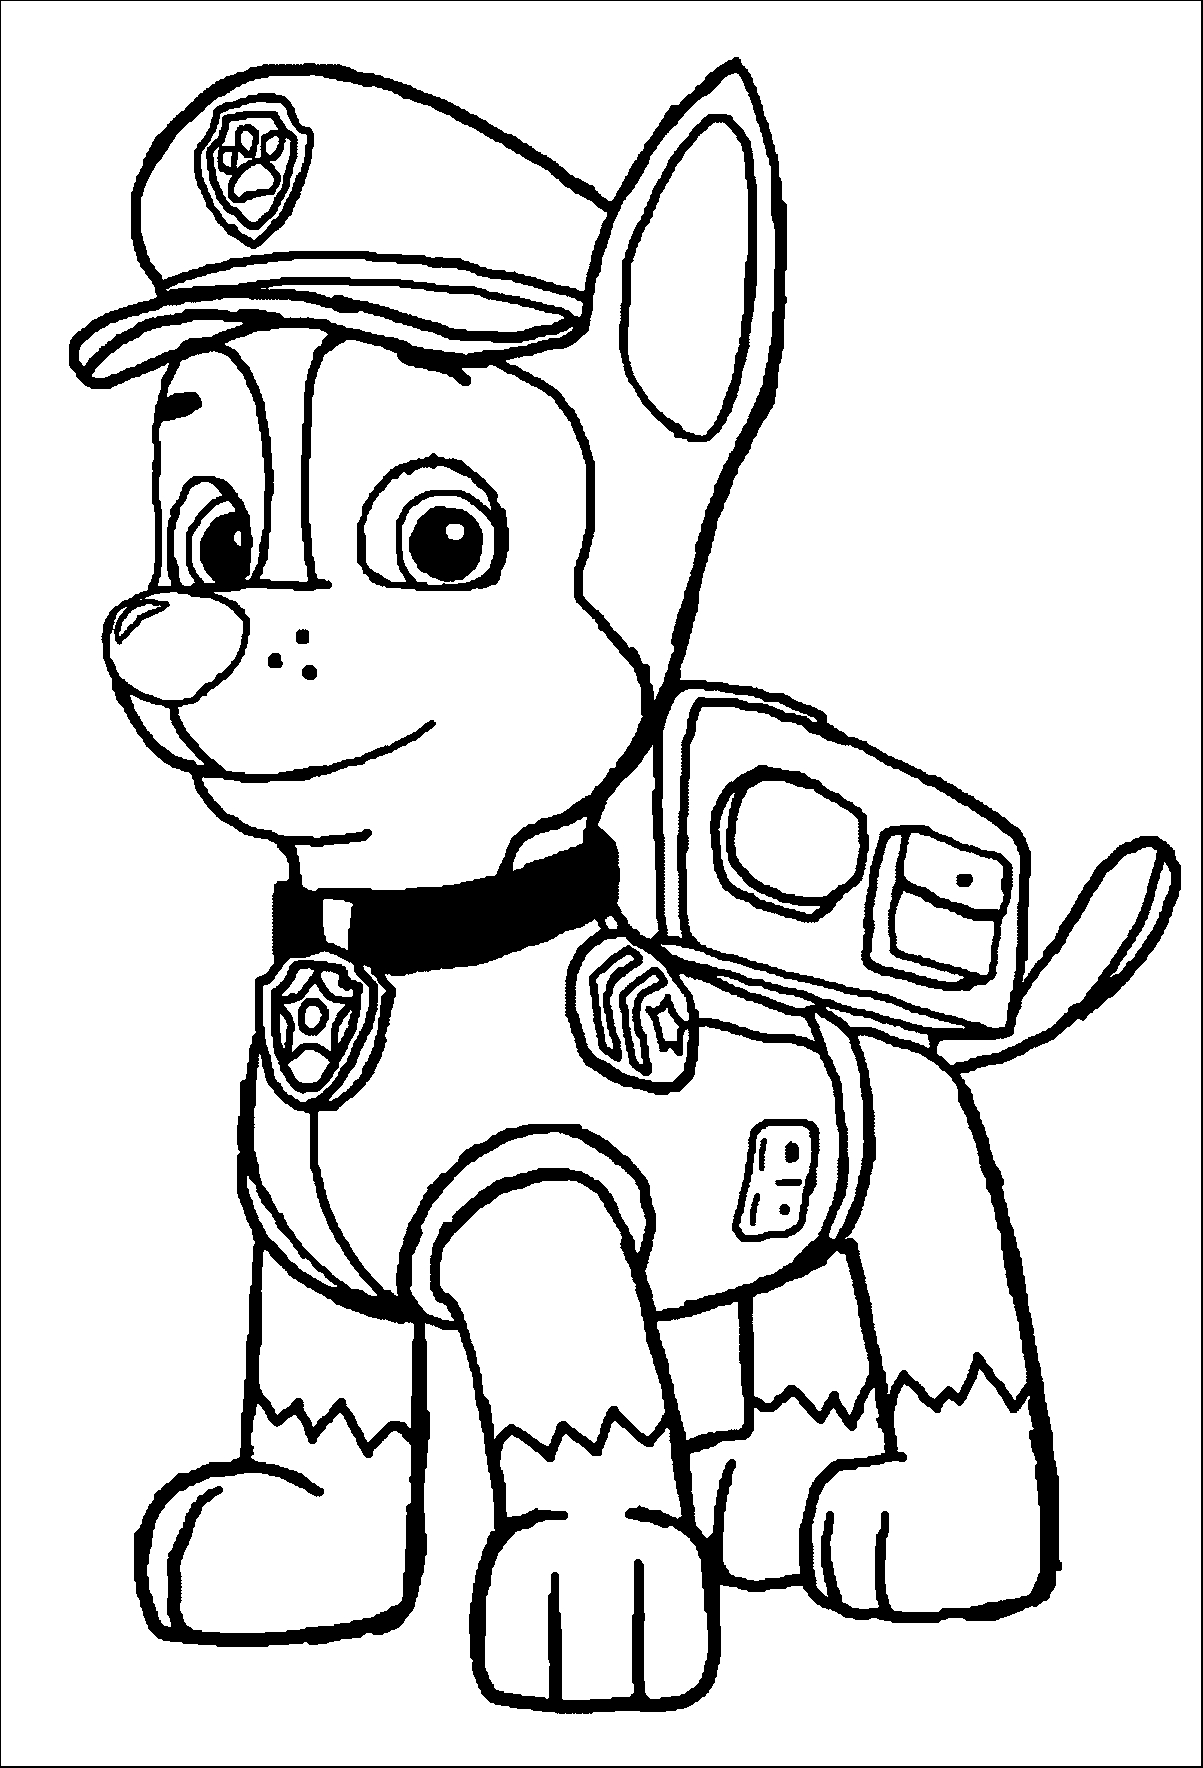 Chase Paw Patrol Coloring Page - Paw Patrol Chase Coloring Pages Az Coloring Pages